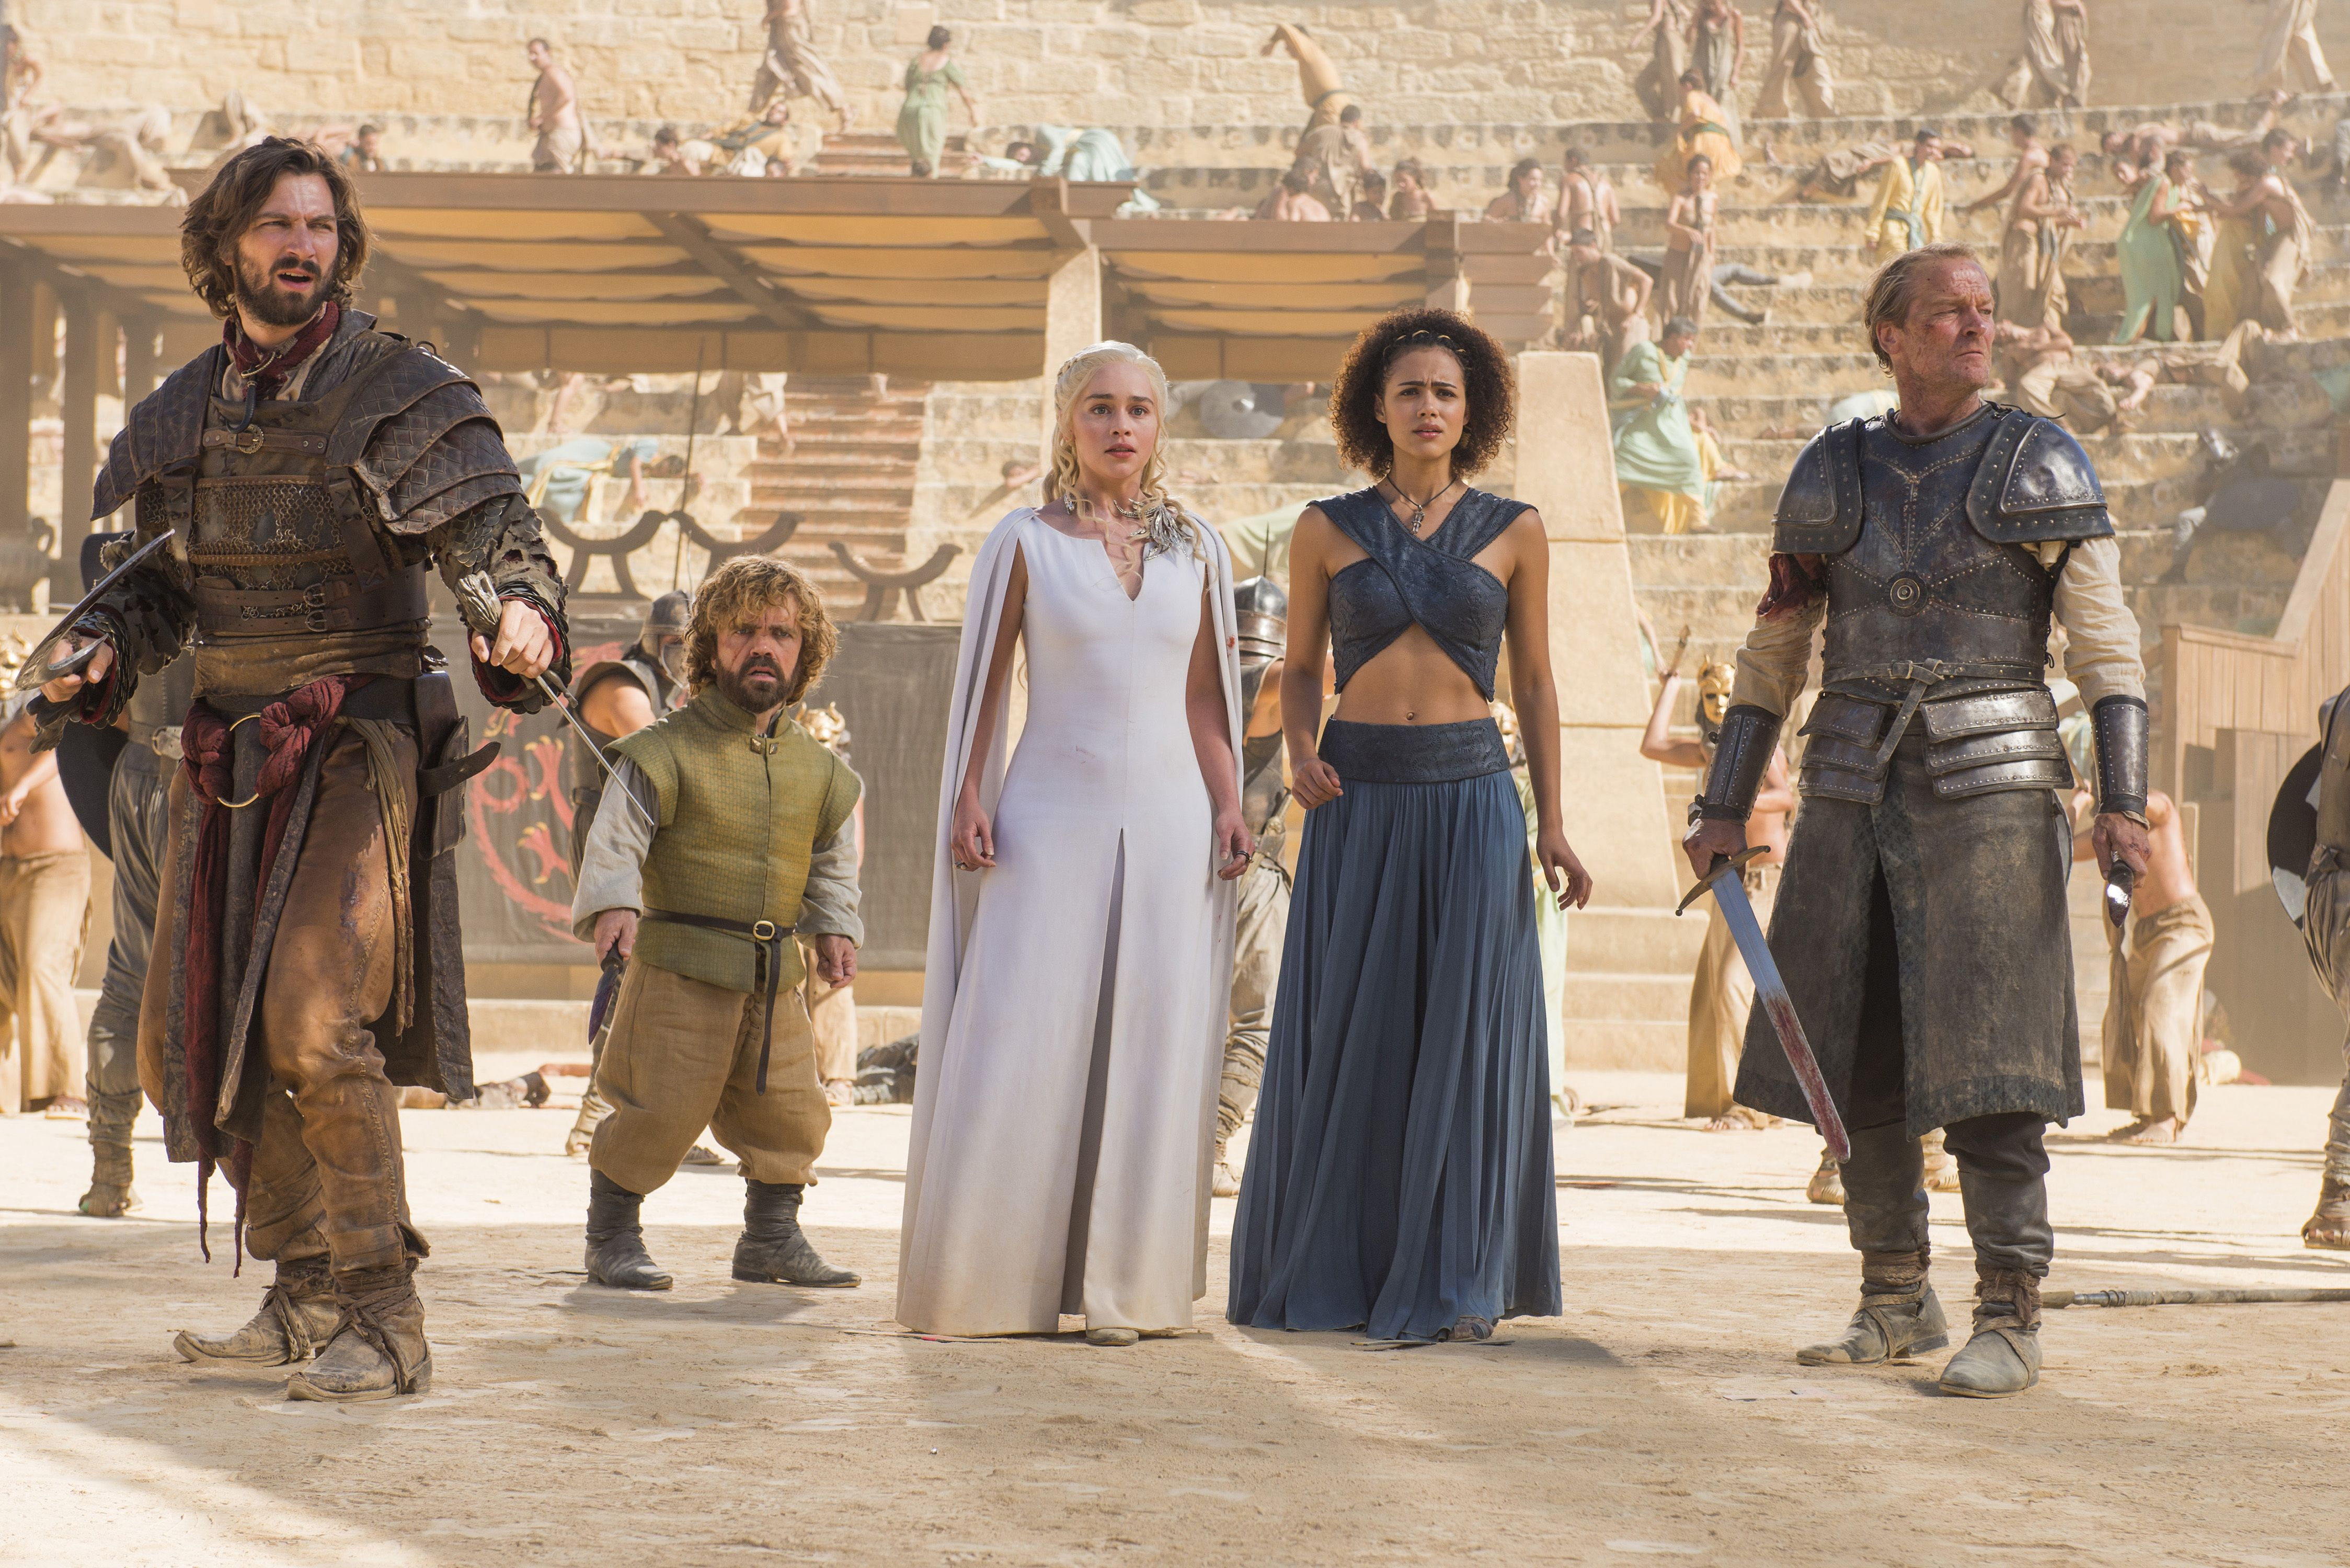 The Craziest 'Game of Thrones' Fan Theories